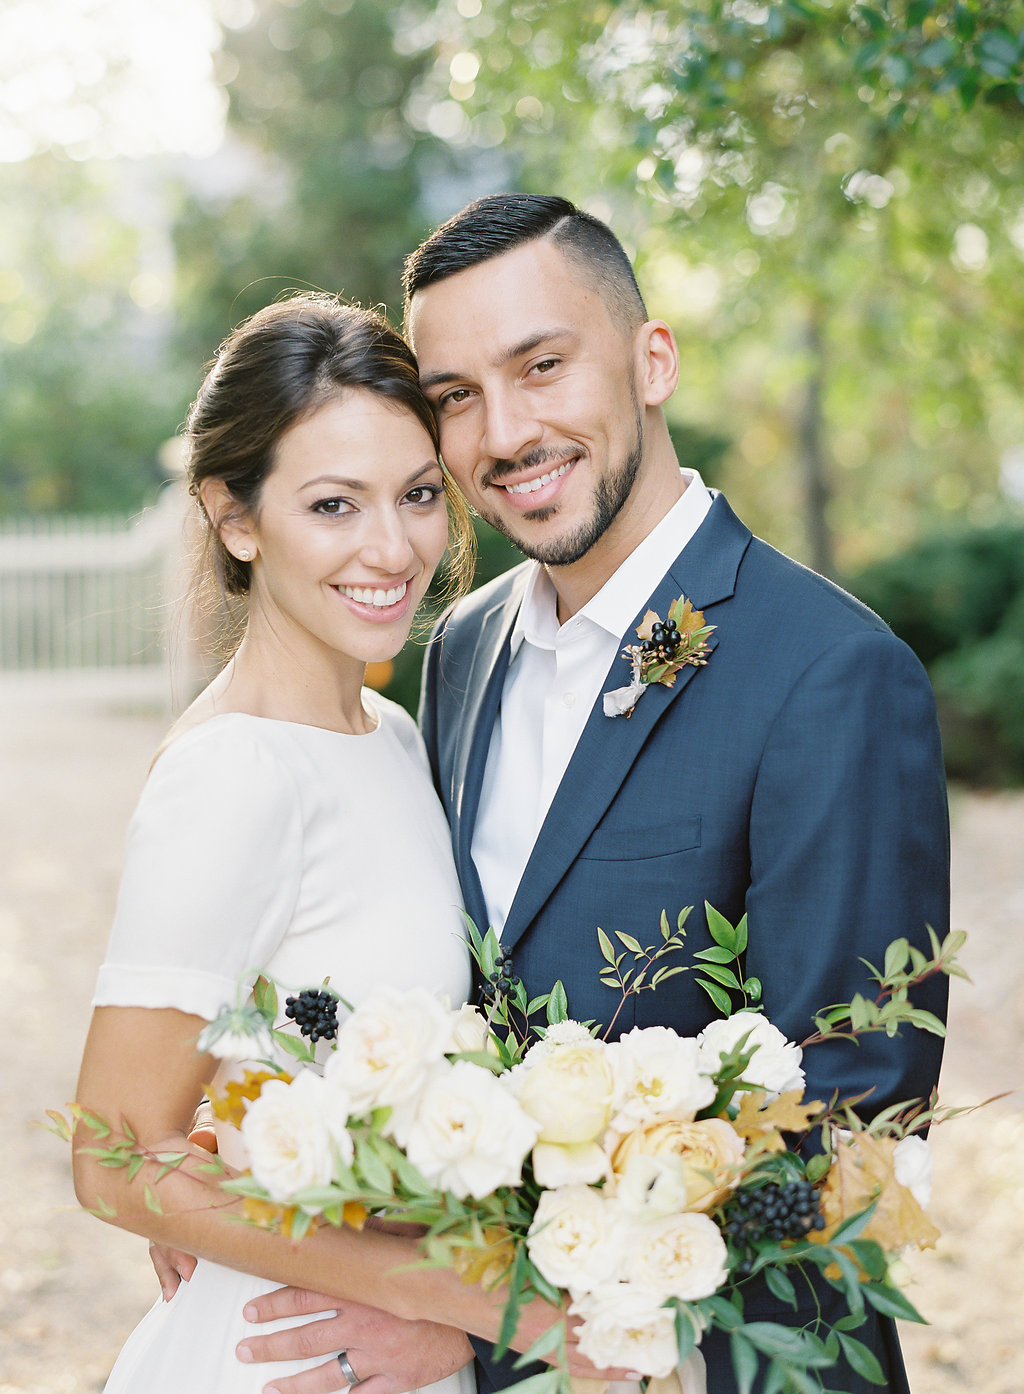 French Inspired Fall Wedding with Fine Art Destination Wedding Planner East Made Event Company and DC Film Photographer Vicki Grafton Photography at Tudor Place in Washington DC-29.jpg